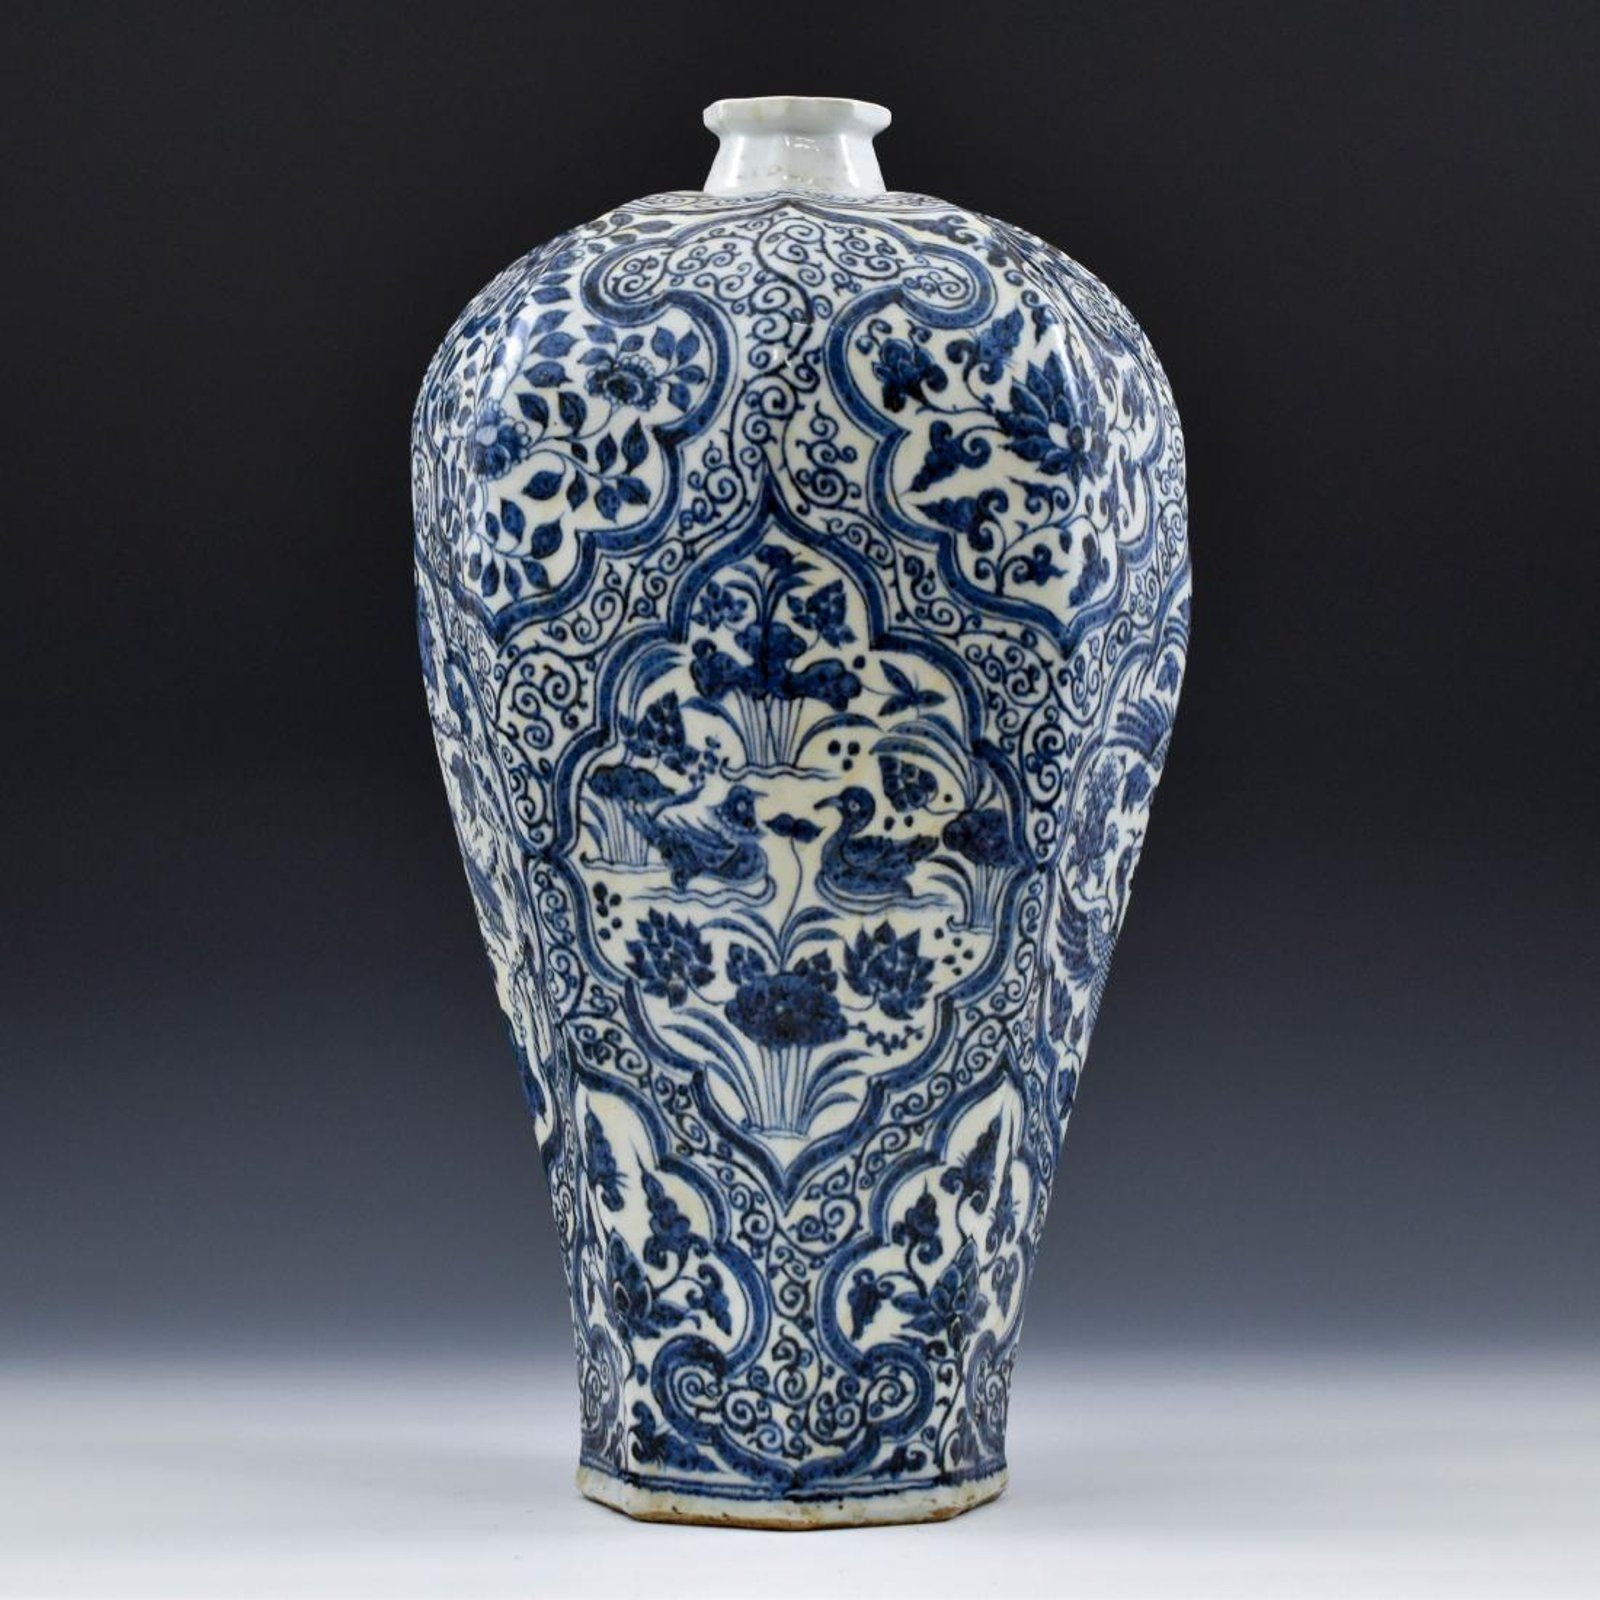 Cobalt Blue Cut Glass Vase Of 23 Blue Crystal Vase the Weekly World with Ming Dynasty Blue and White Octagonal Meiping Vase